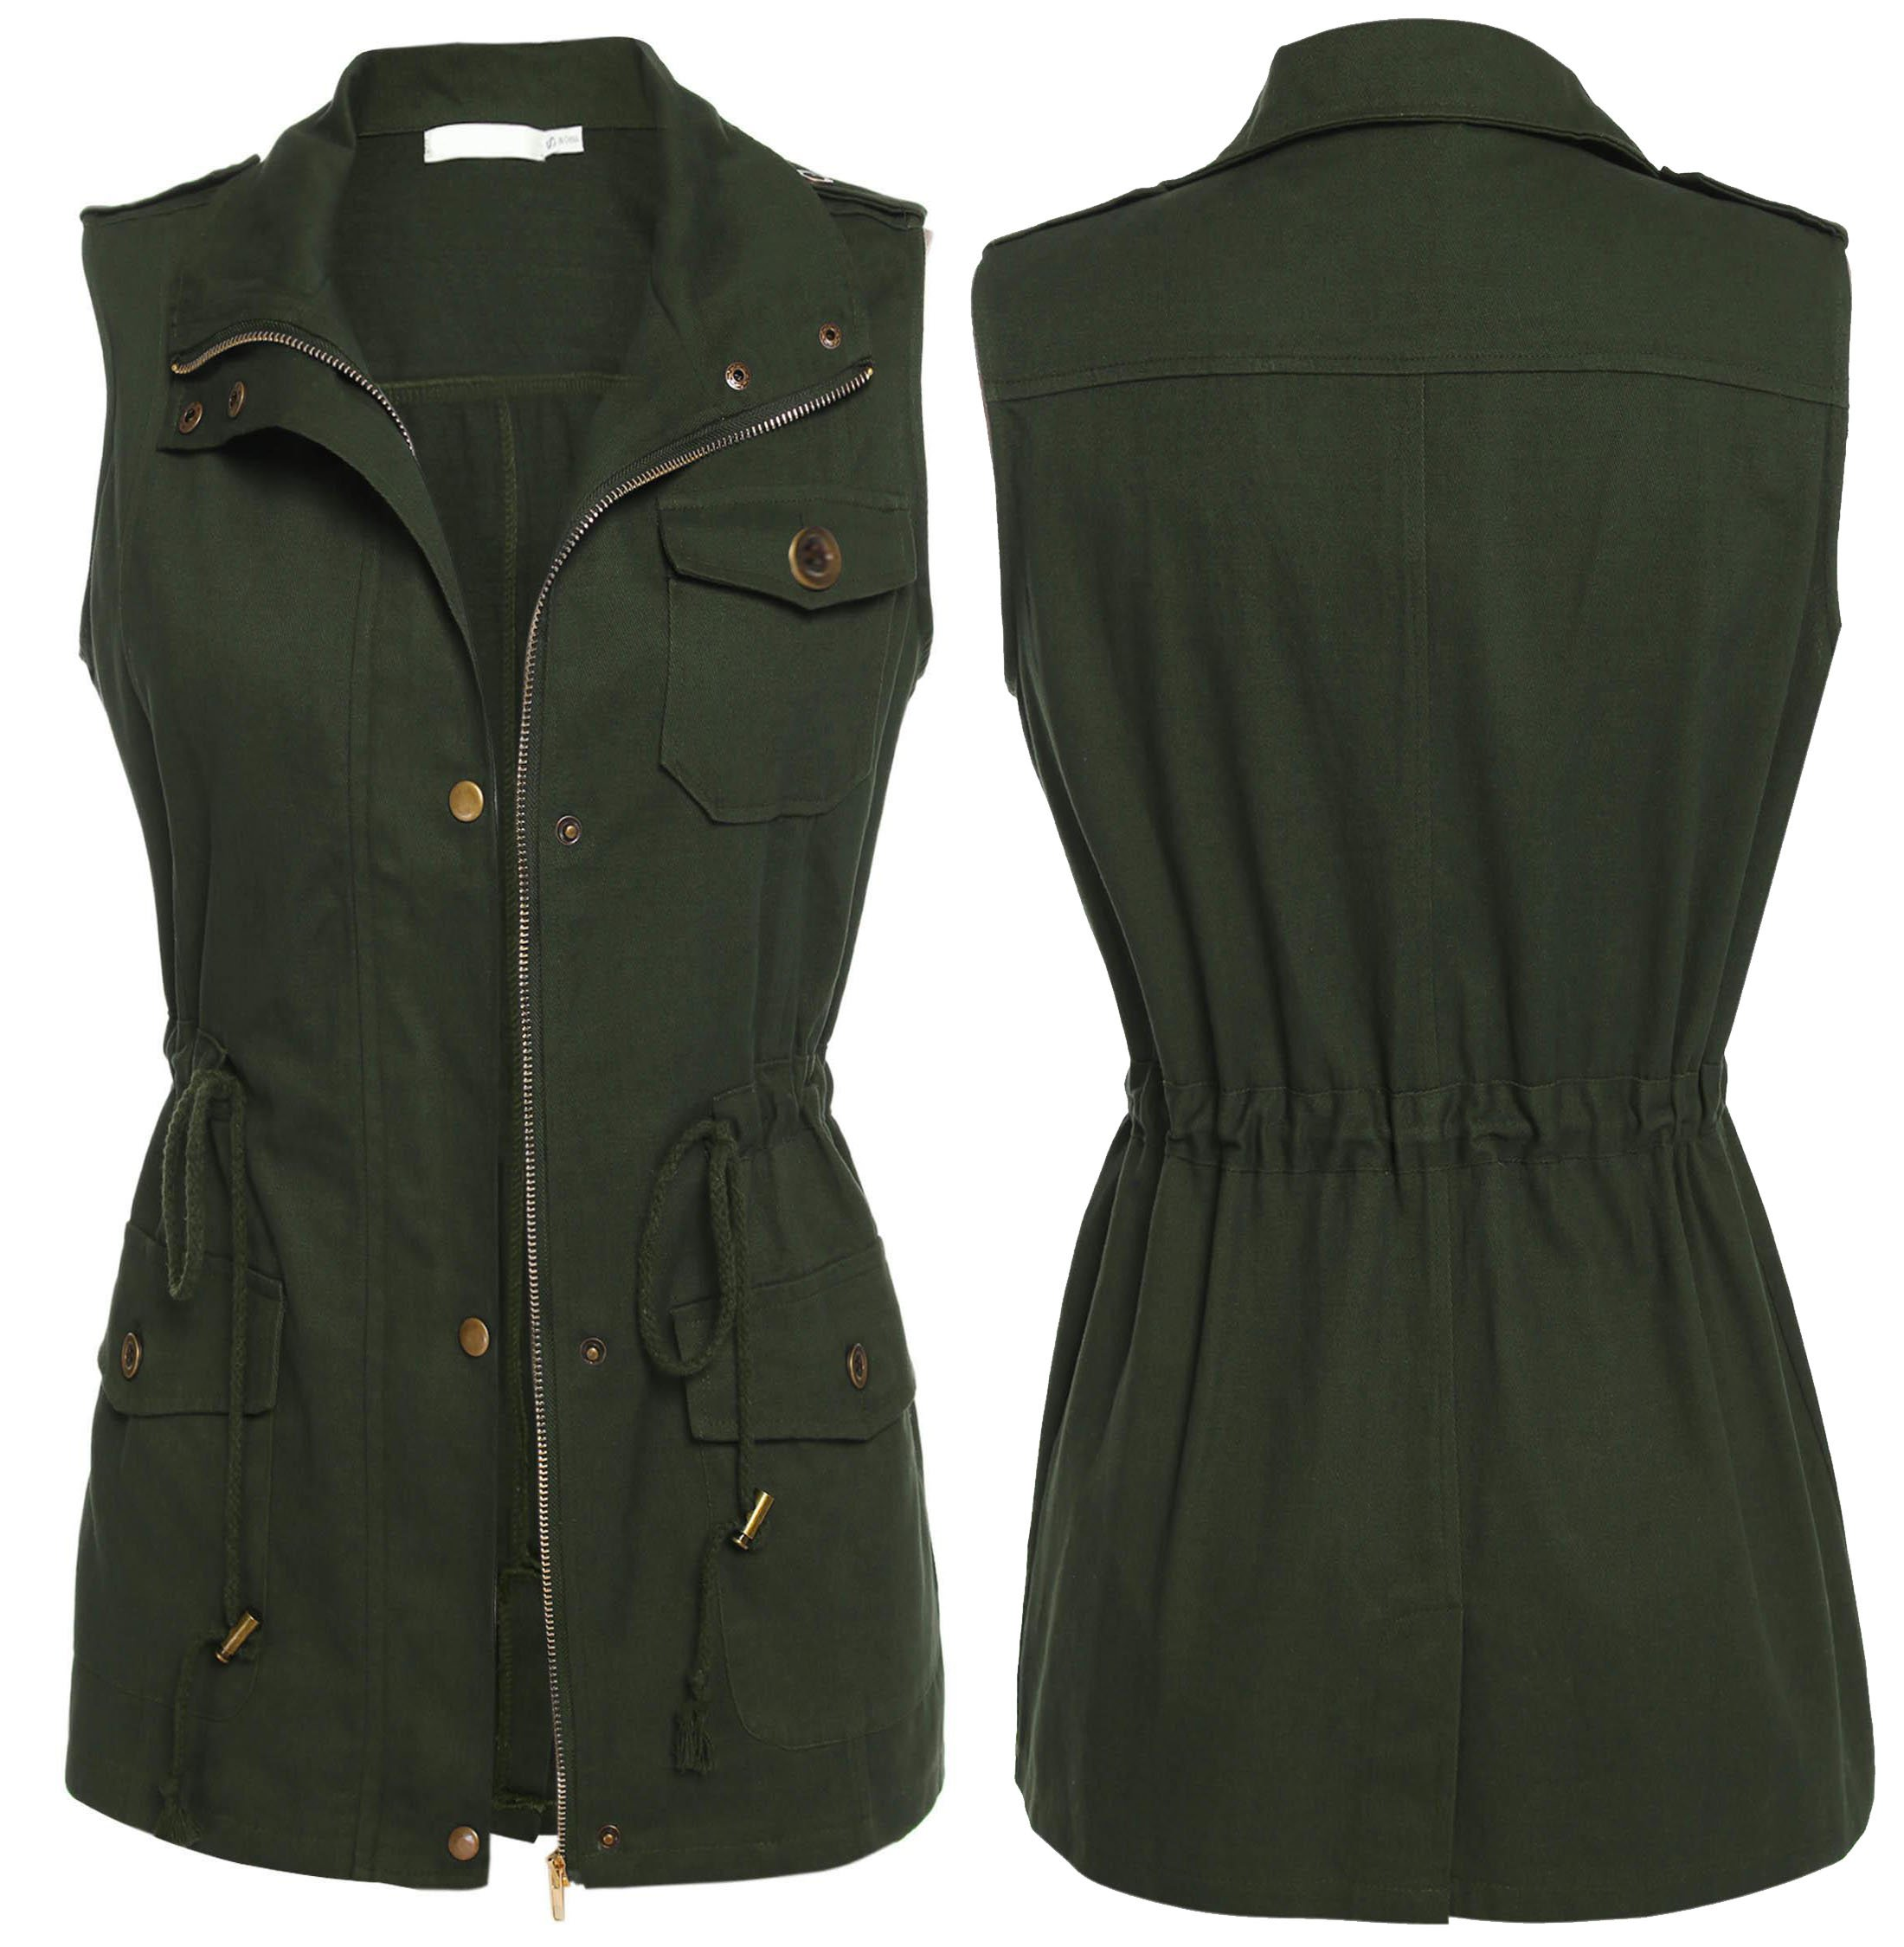 Dickin Women's Zip Up Drawstring Anorak Jacket Military Vest with Pockets (Army Green XL)